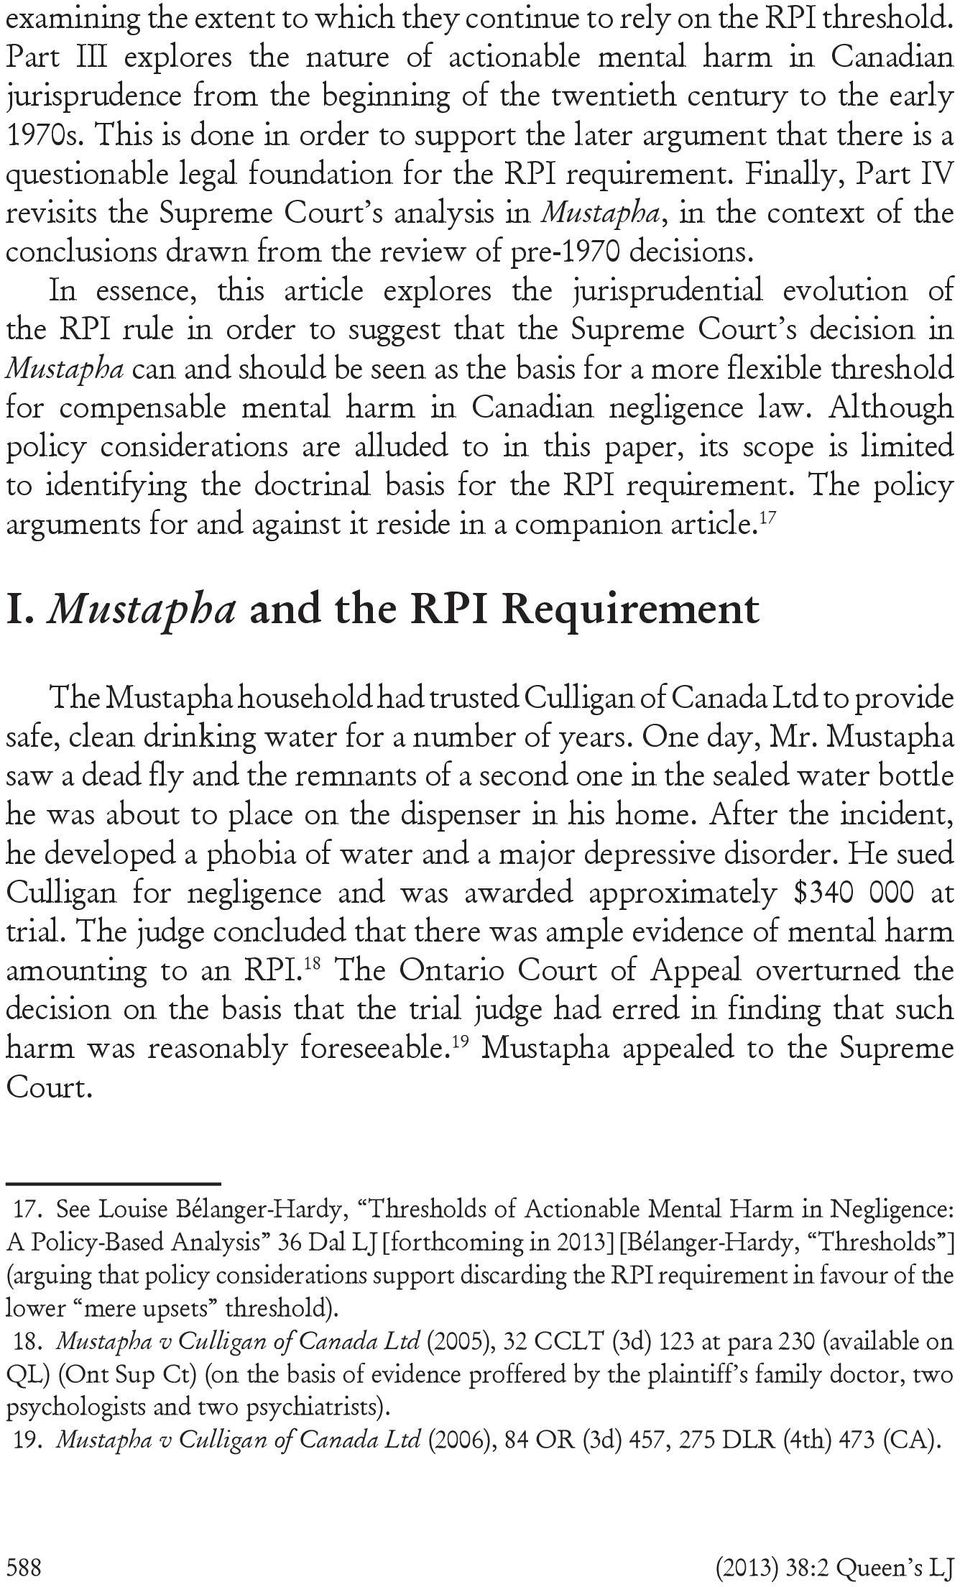 This is done in order to support the later argument that there is a questionable legal foundation for the RPI requirement.